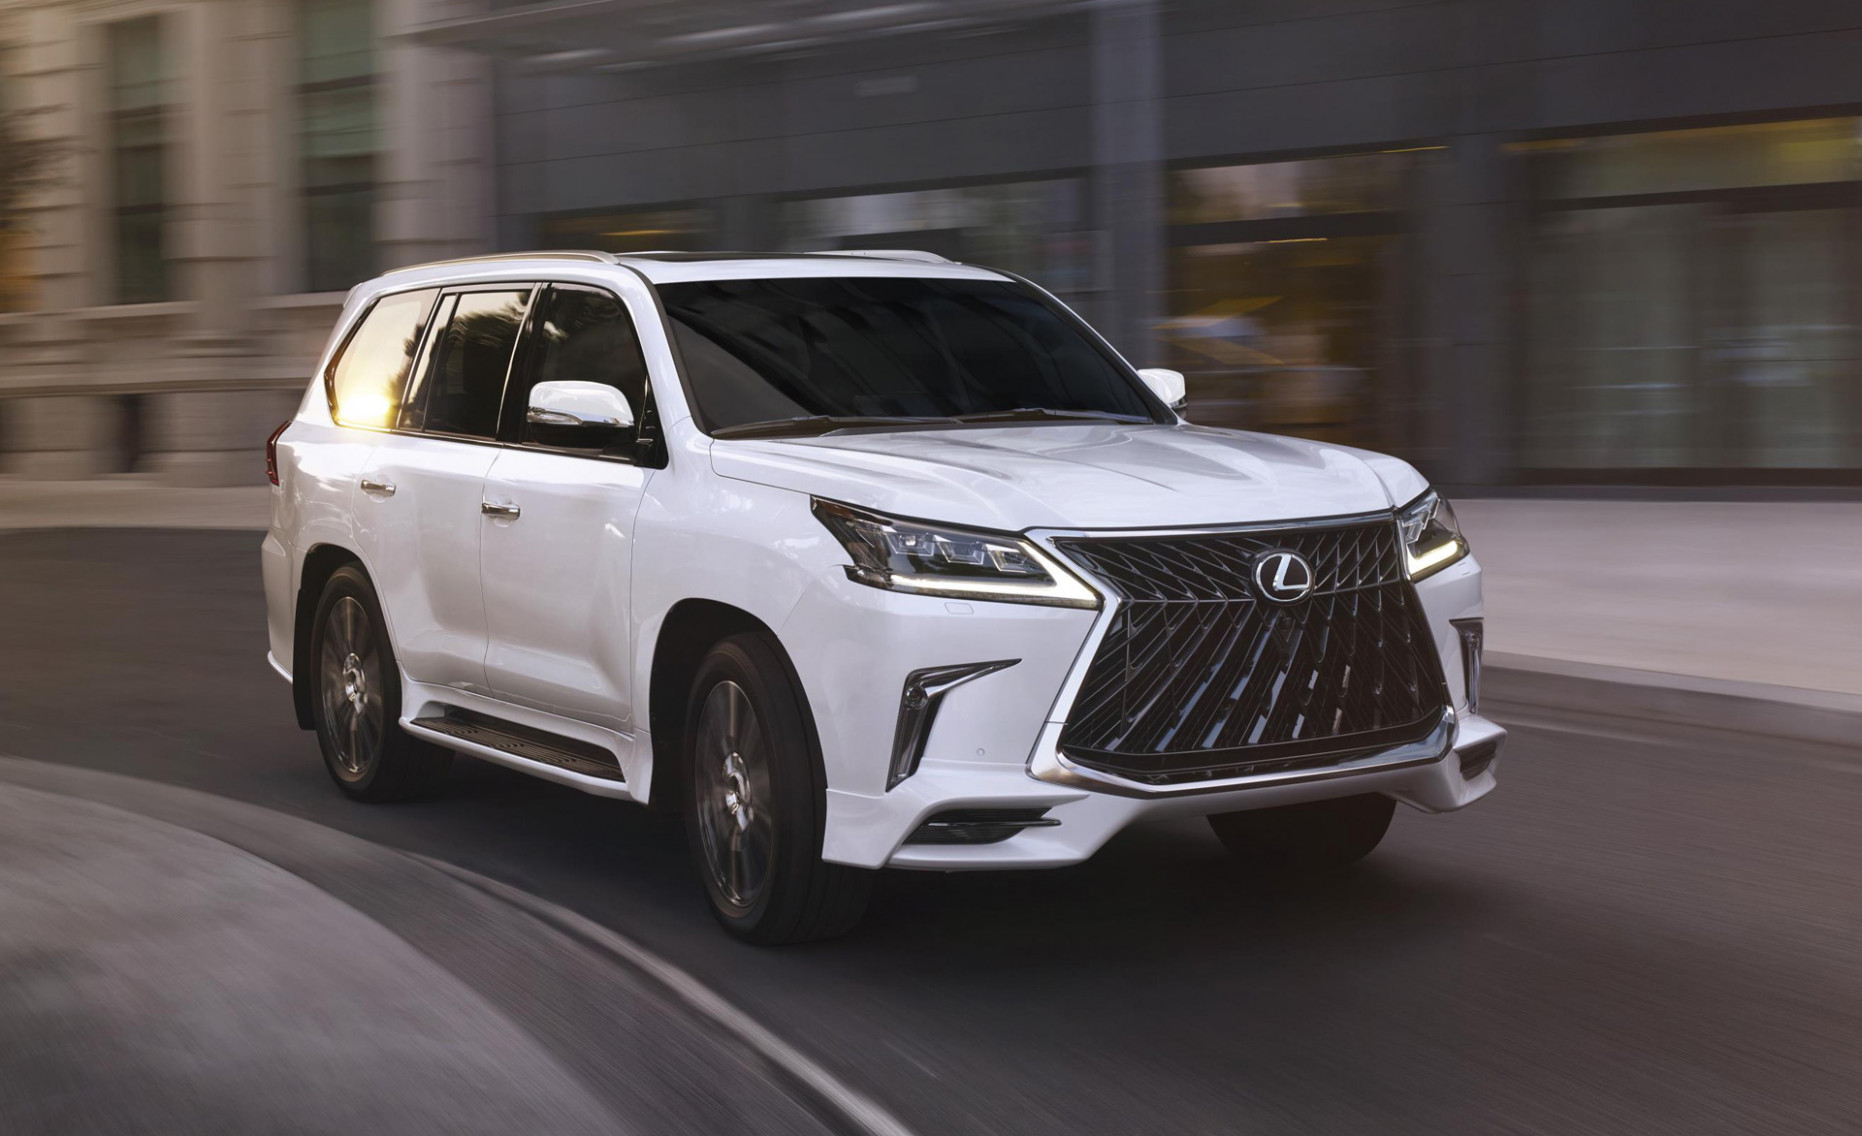 7 Lexus LX Review, Ratings, Specs, Prices, and Photos - The Car ..